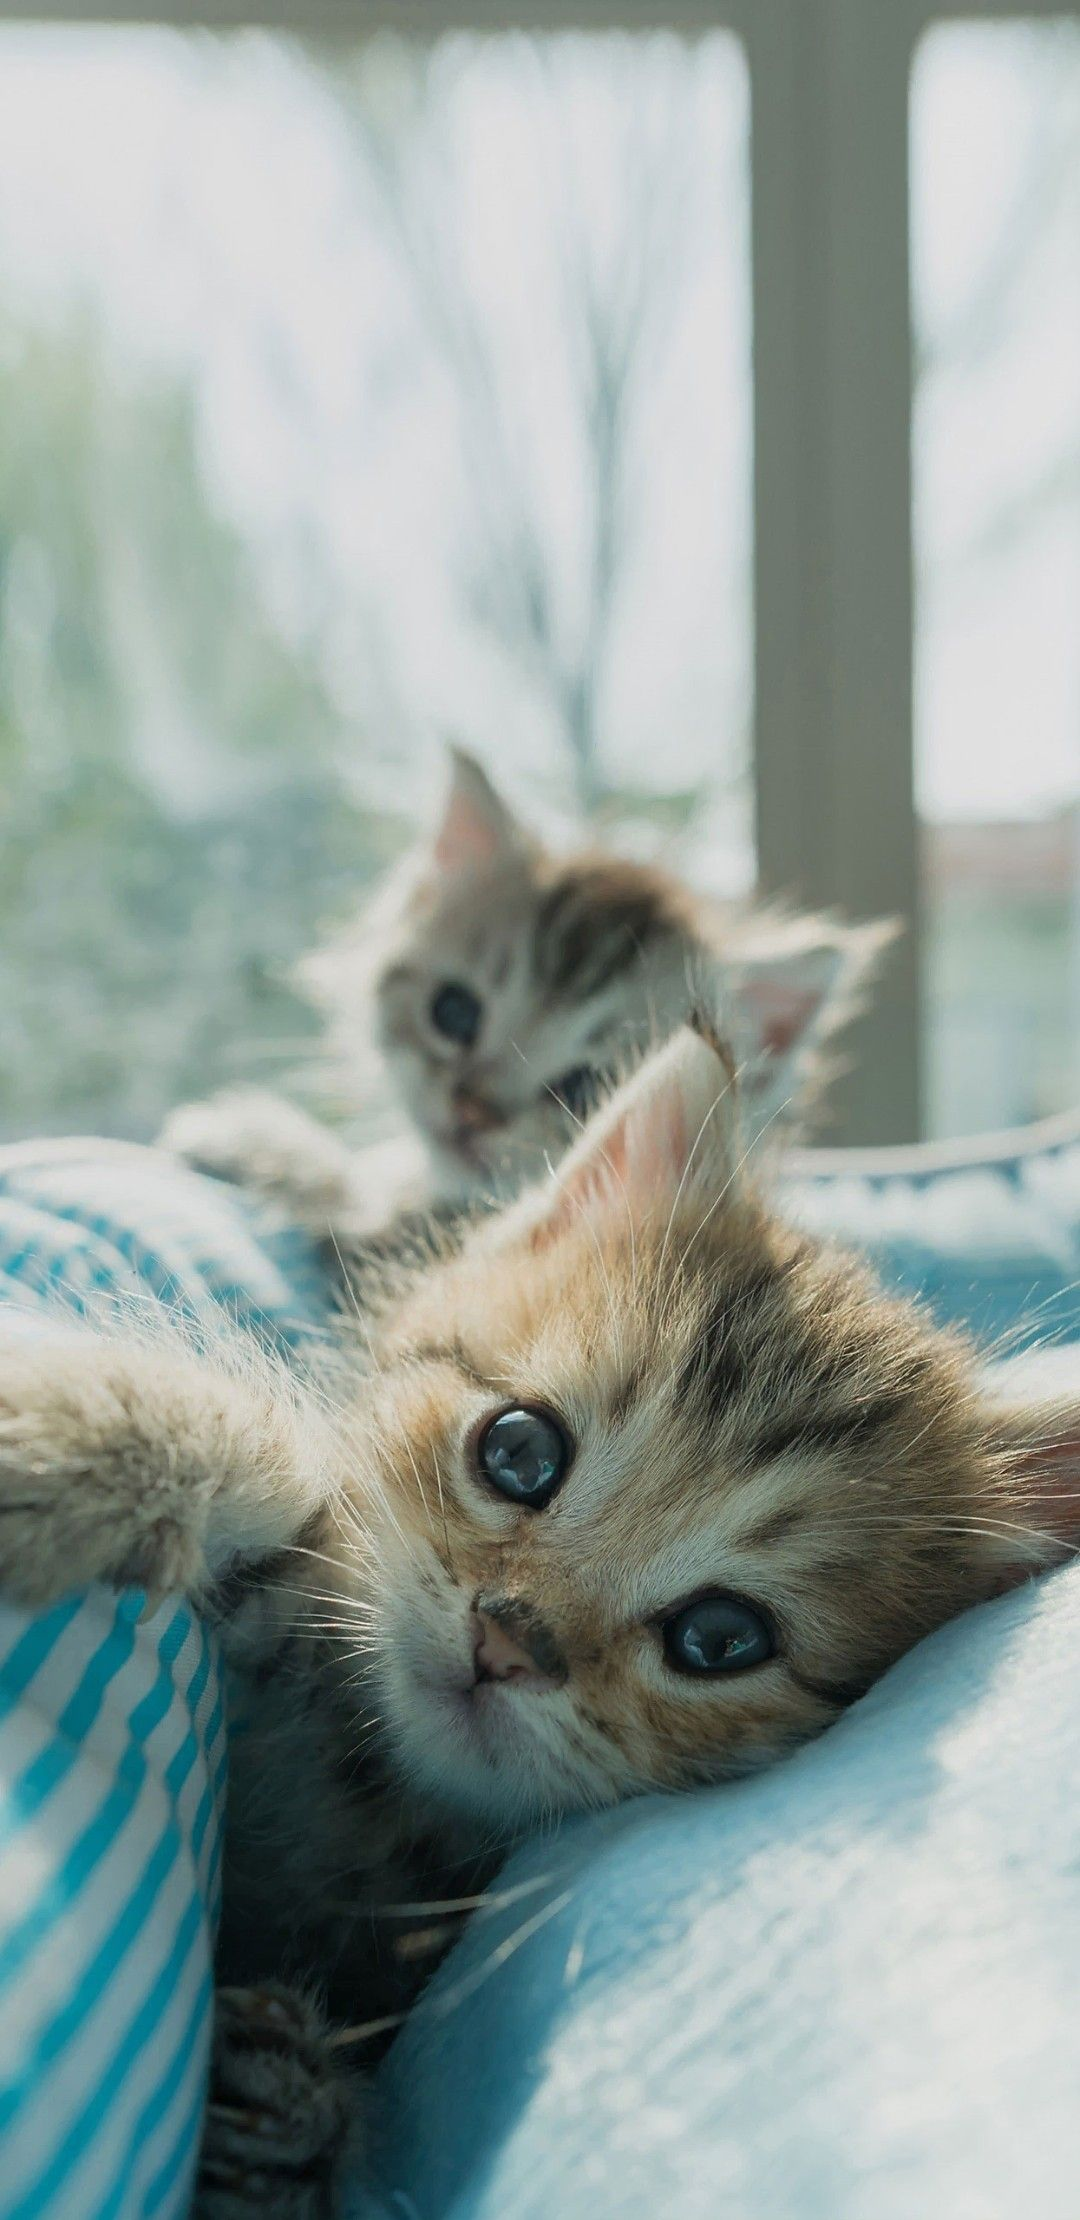 Wallpaper Cat In 2020 Kittens Cutest Cute Animals Cute Cats And Kittens